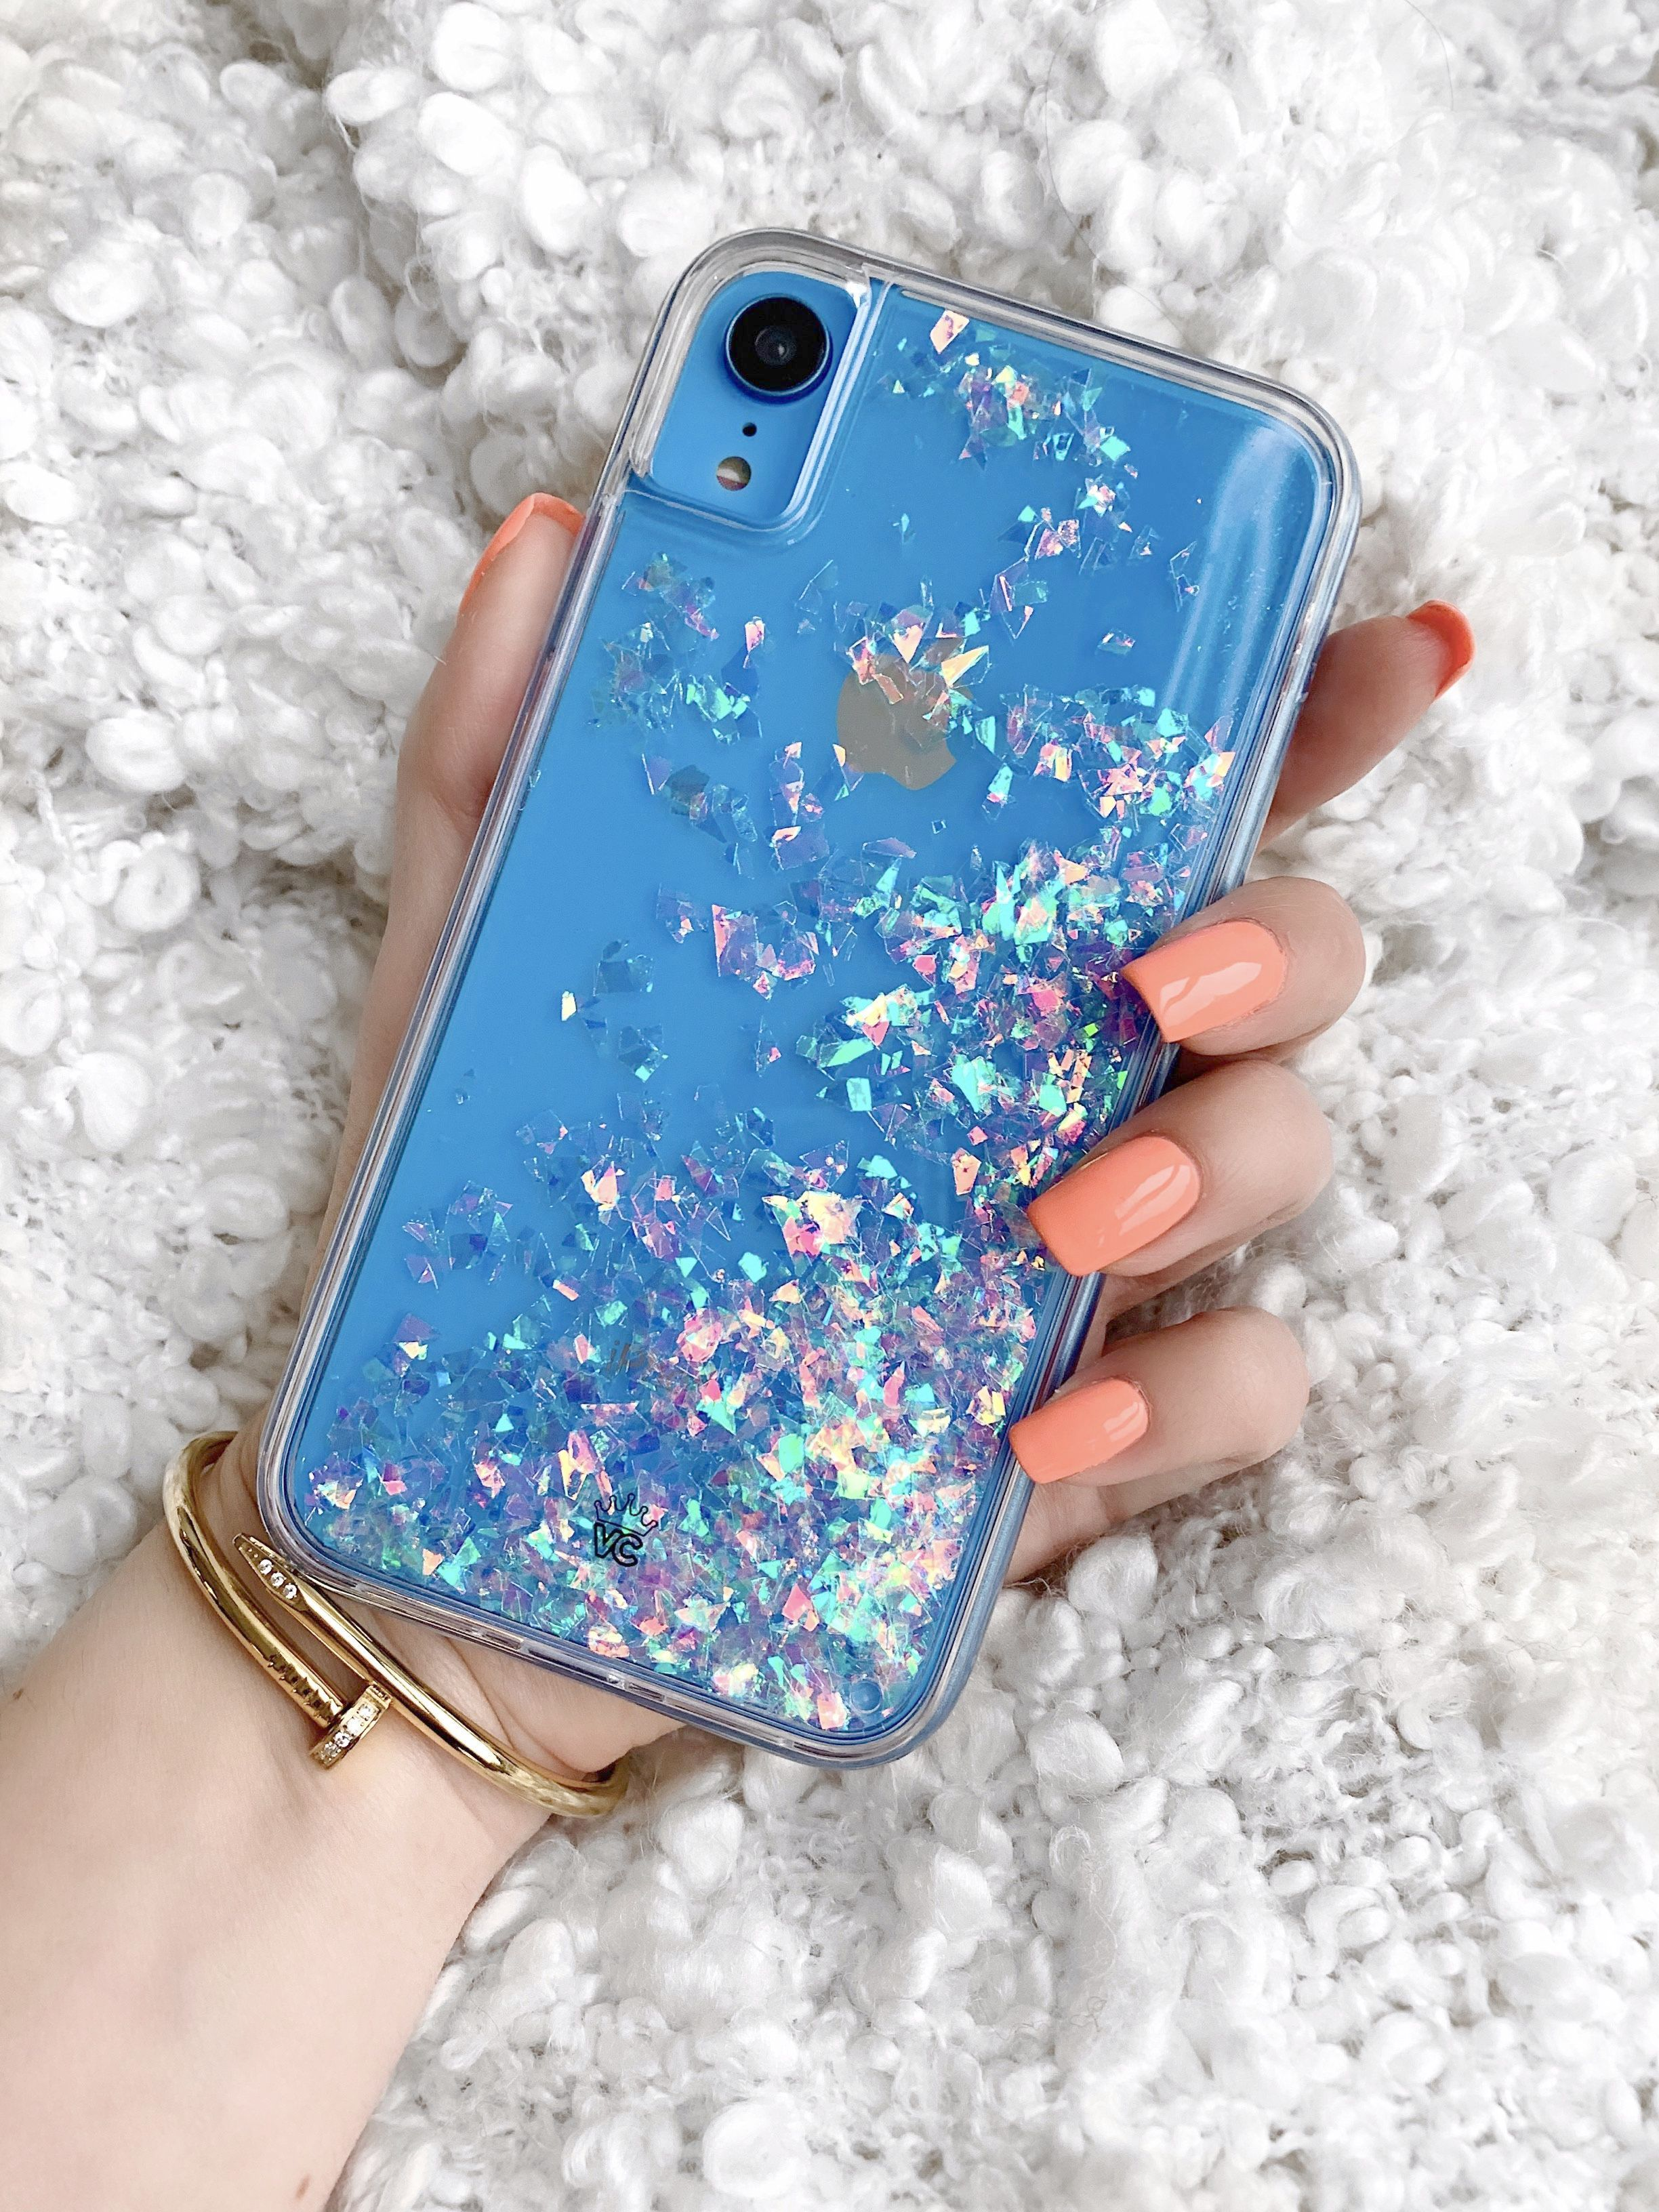 Download Iphone Xr Cases Black Friday Like Iphone X Clear Case Mockup Set Via Iphone Xr Case Hello Kitty Iphone Phone Cases Iphone Phone Apple Phone Case